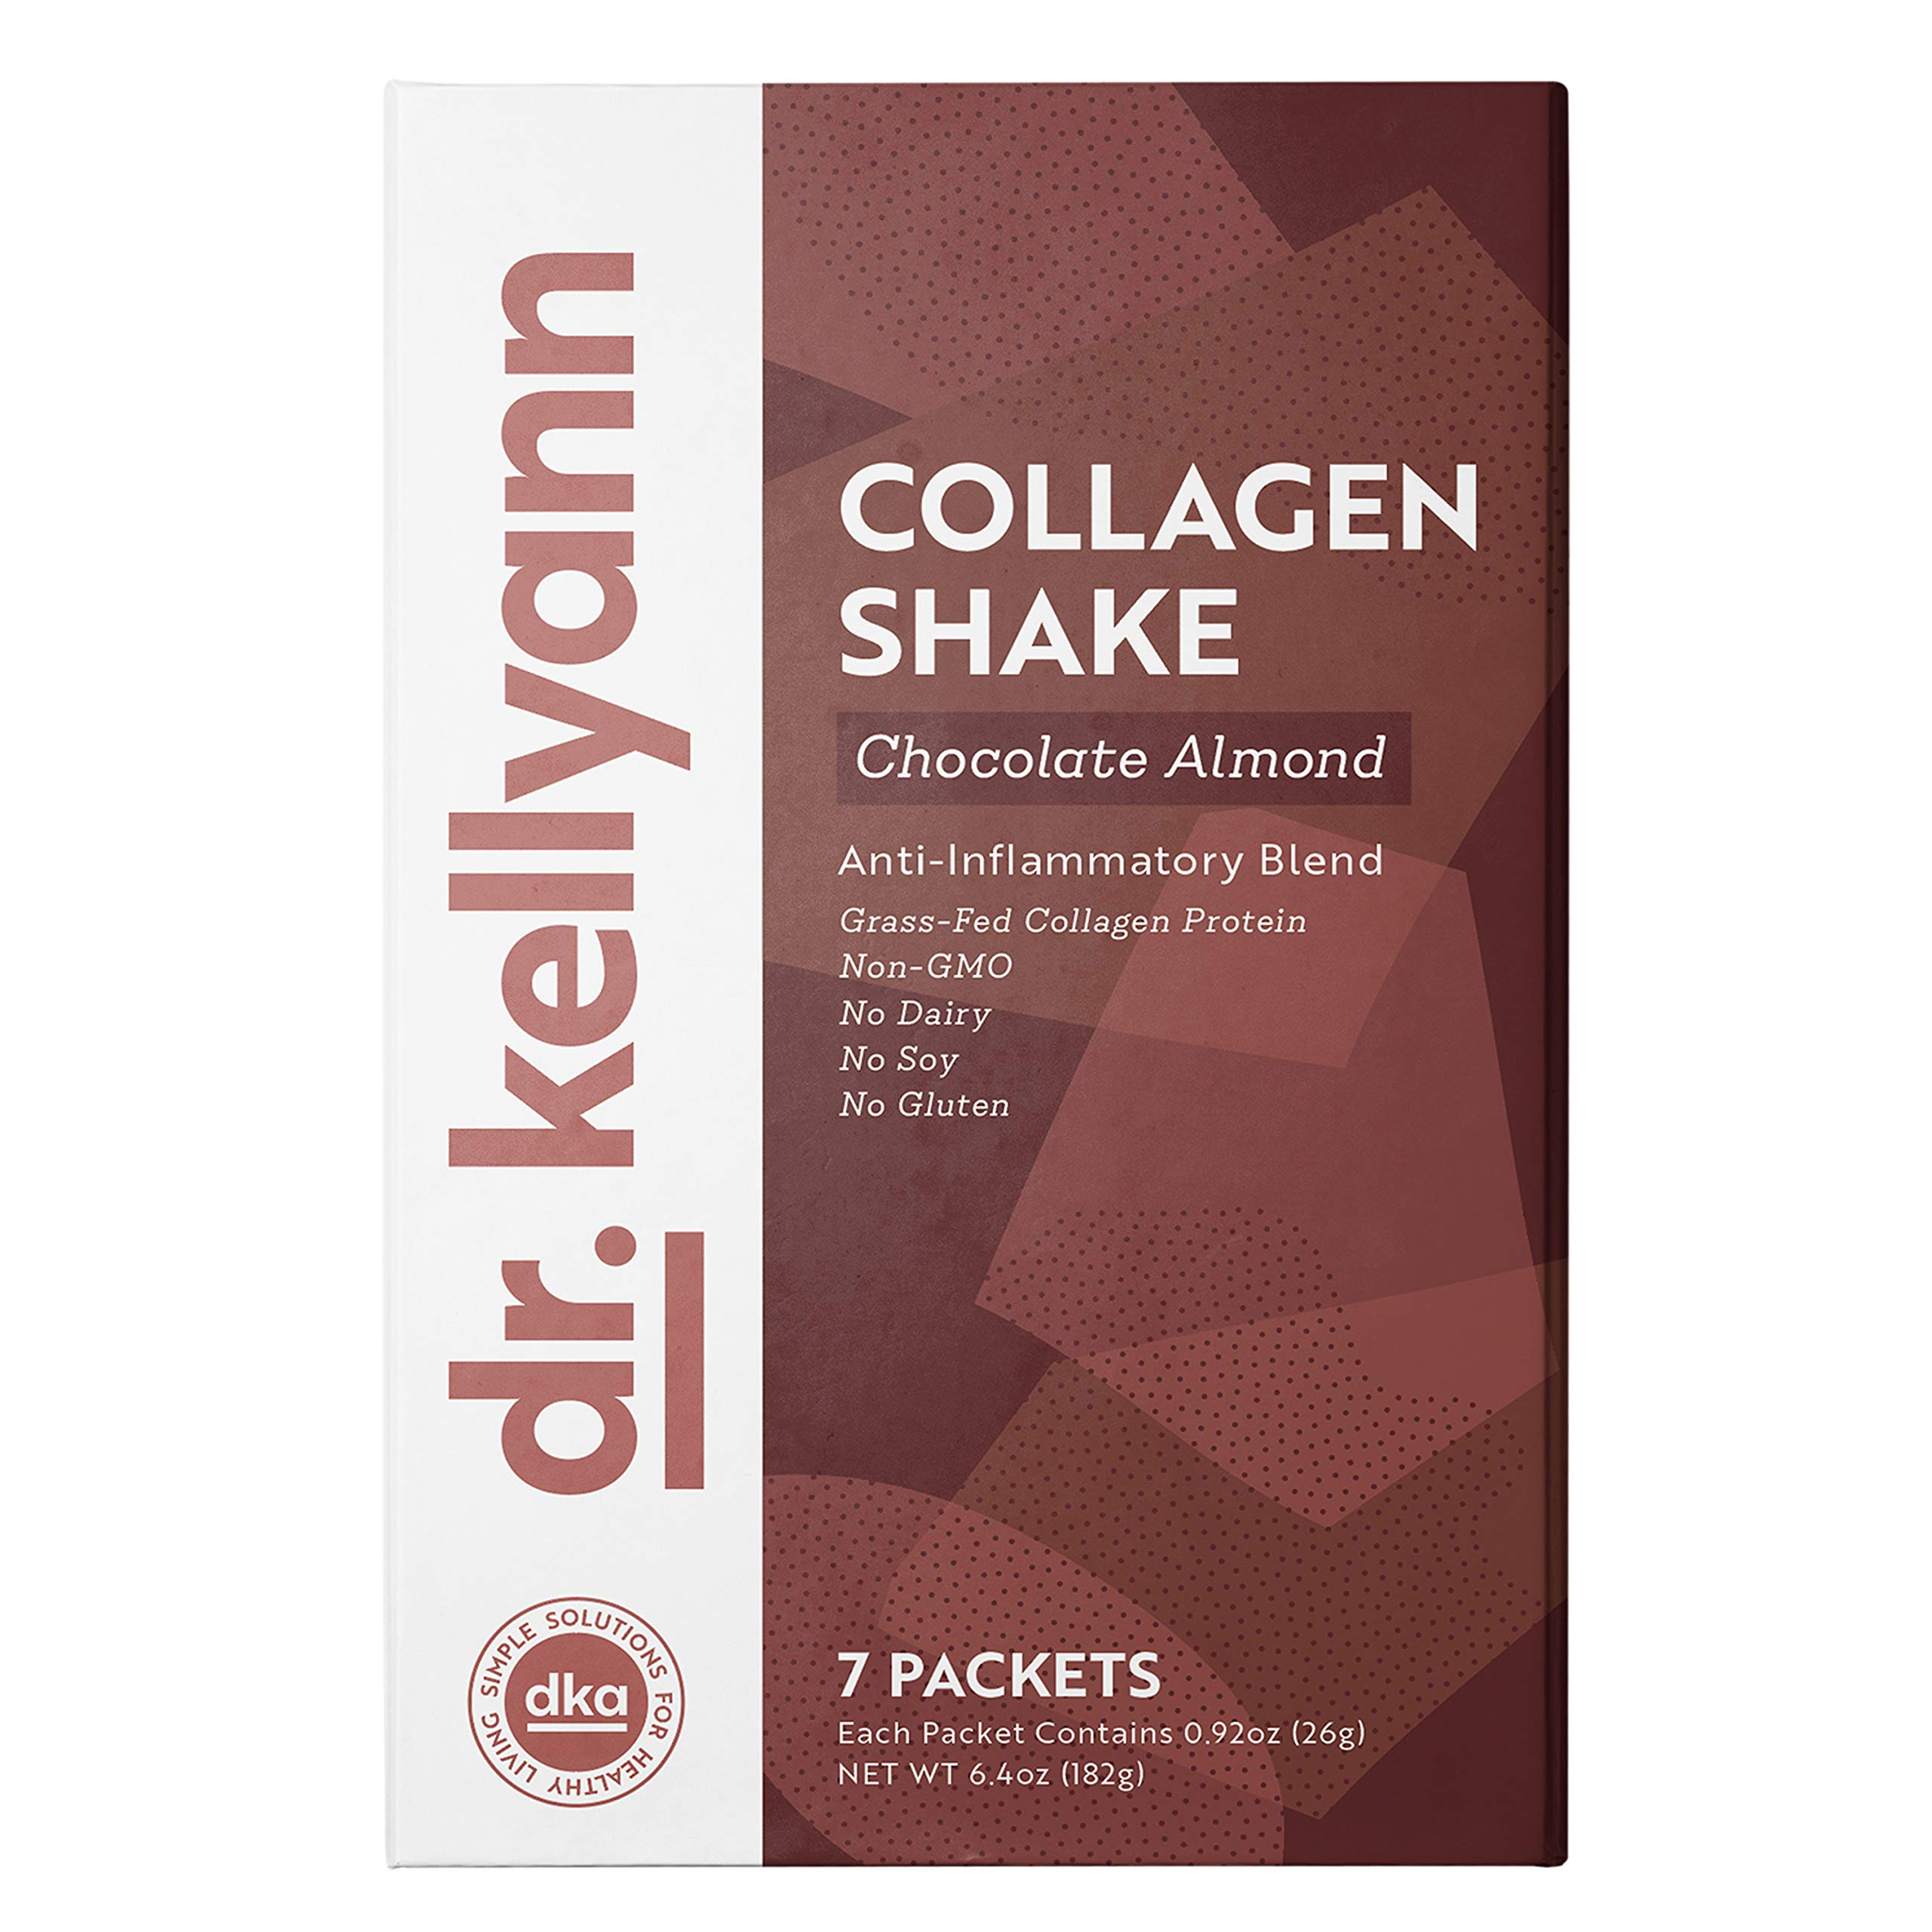 Keto Chocolate Almond Shakes - 100% Grass Fed Collagen Protein by Bone Broth Expert Dr. Kellyann - Gluten Free, Dairy Free, Soy Free, Non-GMO - Perfect for Keto, Paleo & Weight loss Diets (7 servings) by Dr. Kellyann